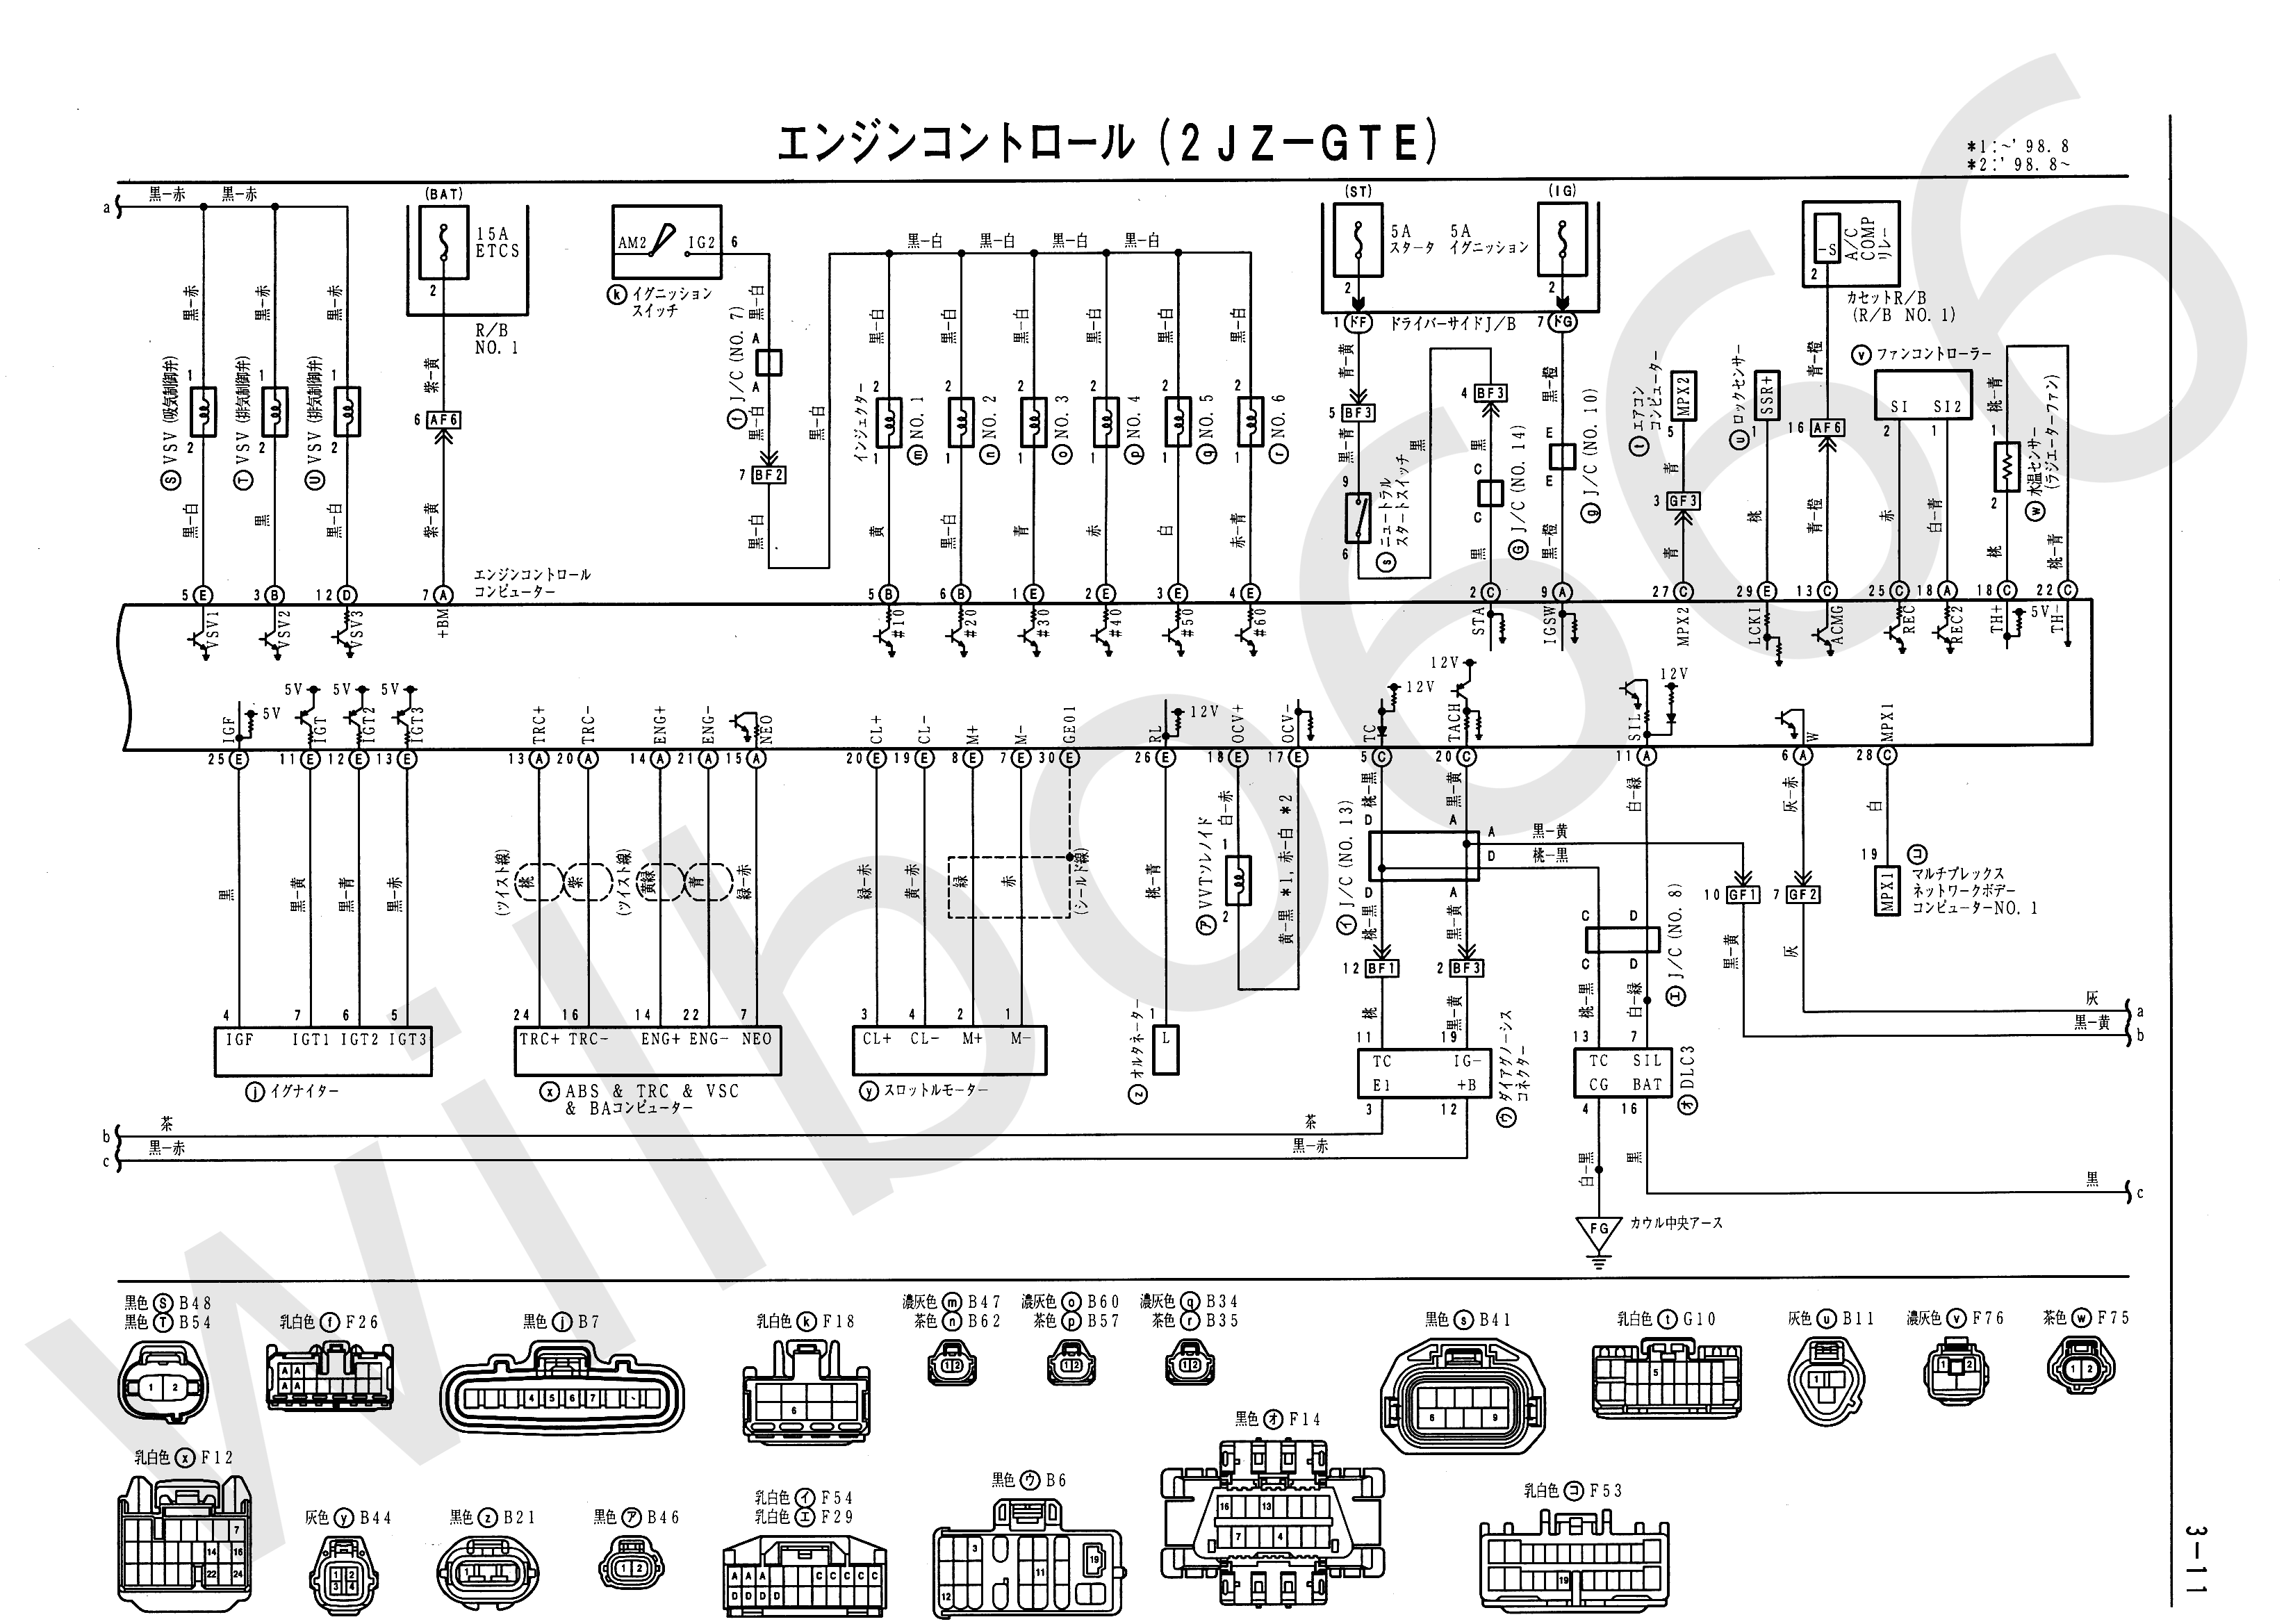 JZS161 Electrical Wiring Diagram 6748505 3 11 2jz wiring diagram 2jz wiring diagrams instruction  at gsmportal.co